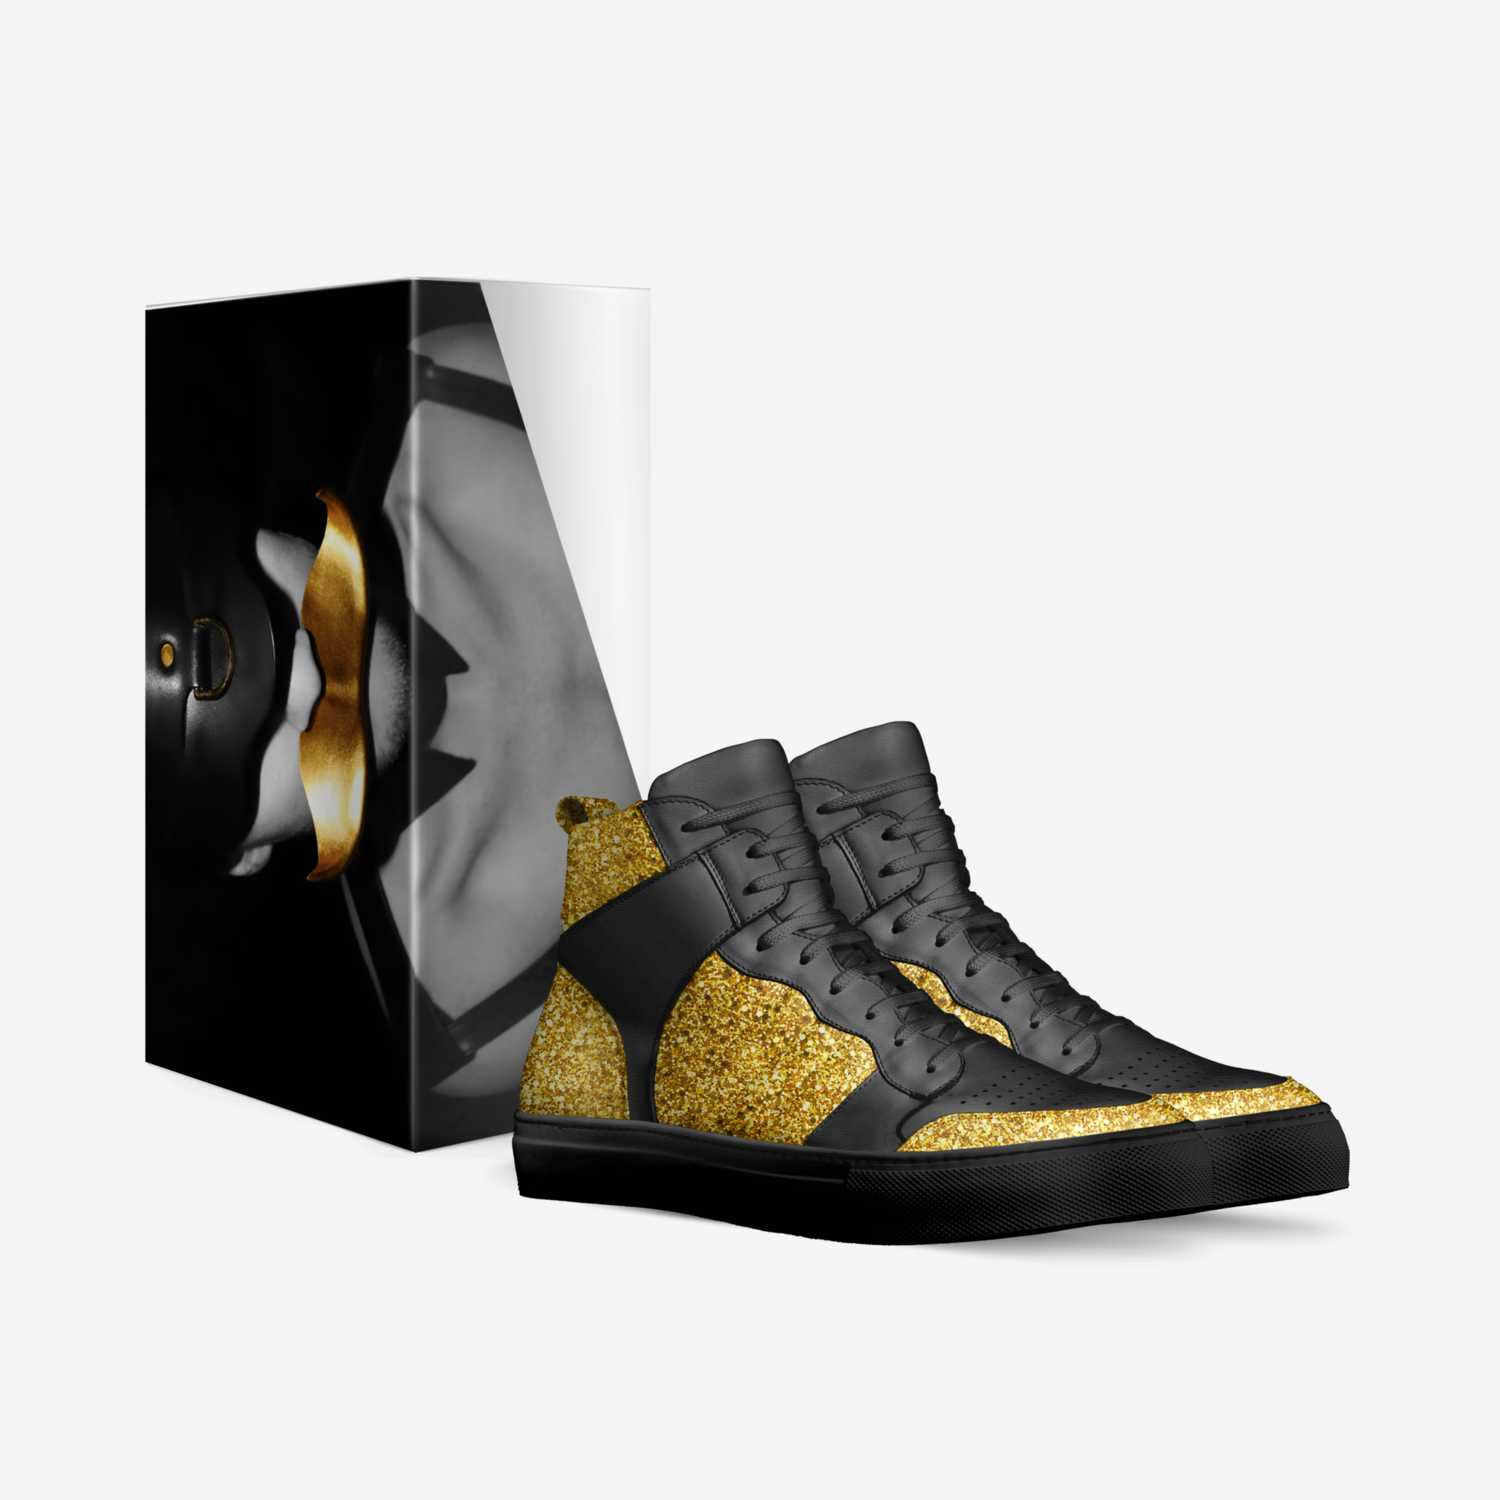 Govner custom made in Italy shoes by Govner Leather | Box view